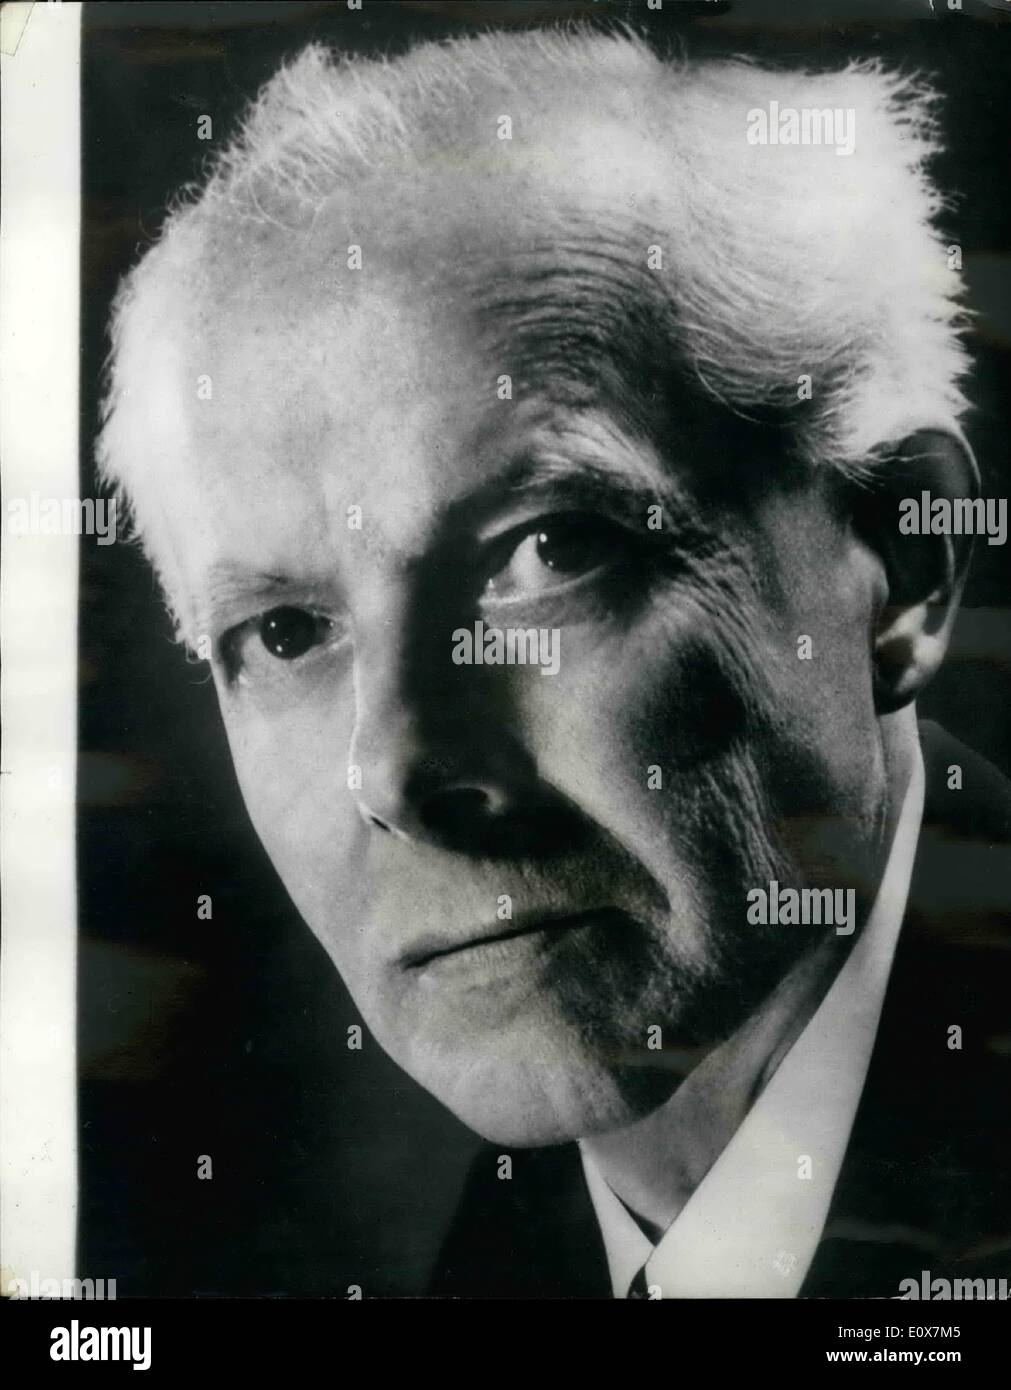 Sep. 09, 1965 - 20th, Anniversary of Death of Bela Bartok; Bela Bartok, the great Hungarian composer and folkorist and outstanding figure of the music art of the 20th. century died 20 years ago on September 26th, 1945, in New York. He was born in 1881. Photo Shows Bela Bartok, The 20th anniversary of his death is on Sept. 26th. - Stock Image